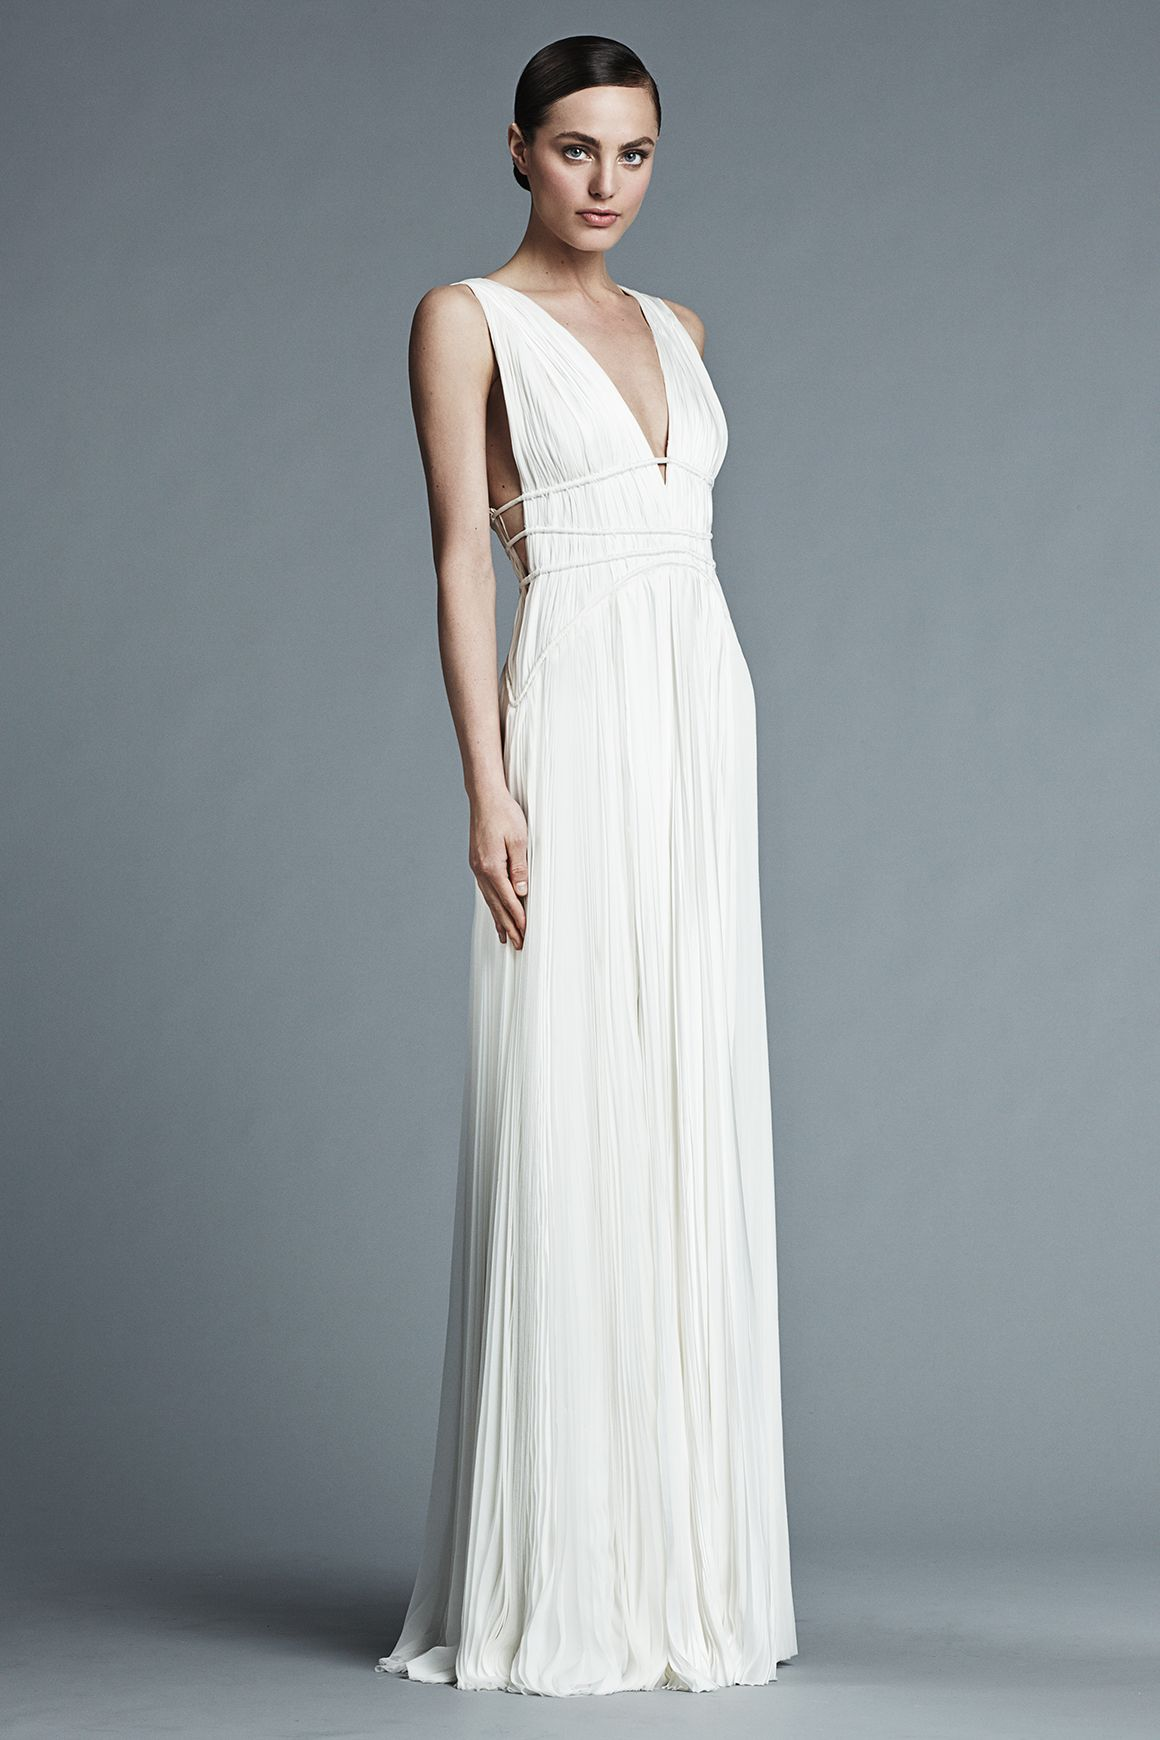 J.MENDEL Paris Bridal 2015 | GISELLE - Sleeveless Pleated Gown with ...